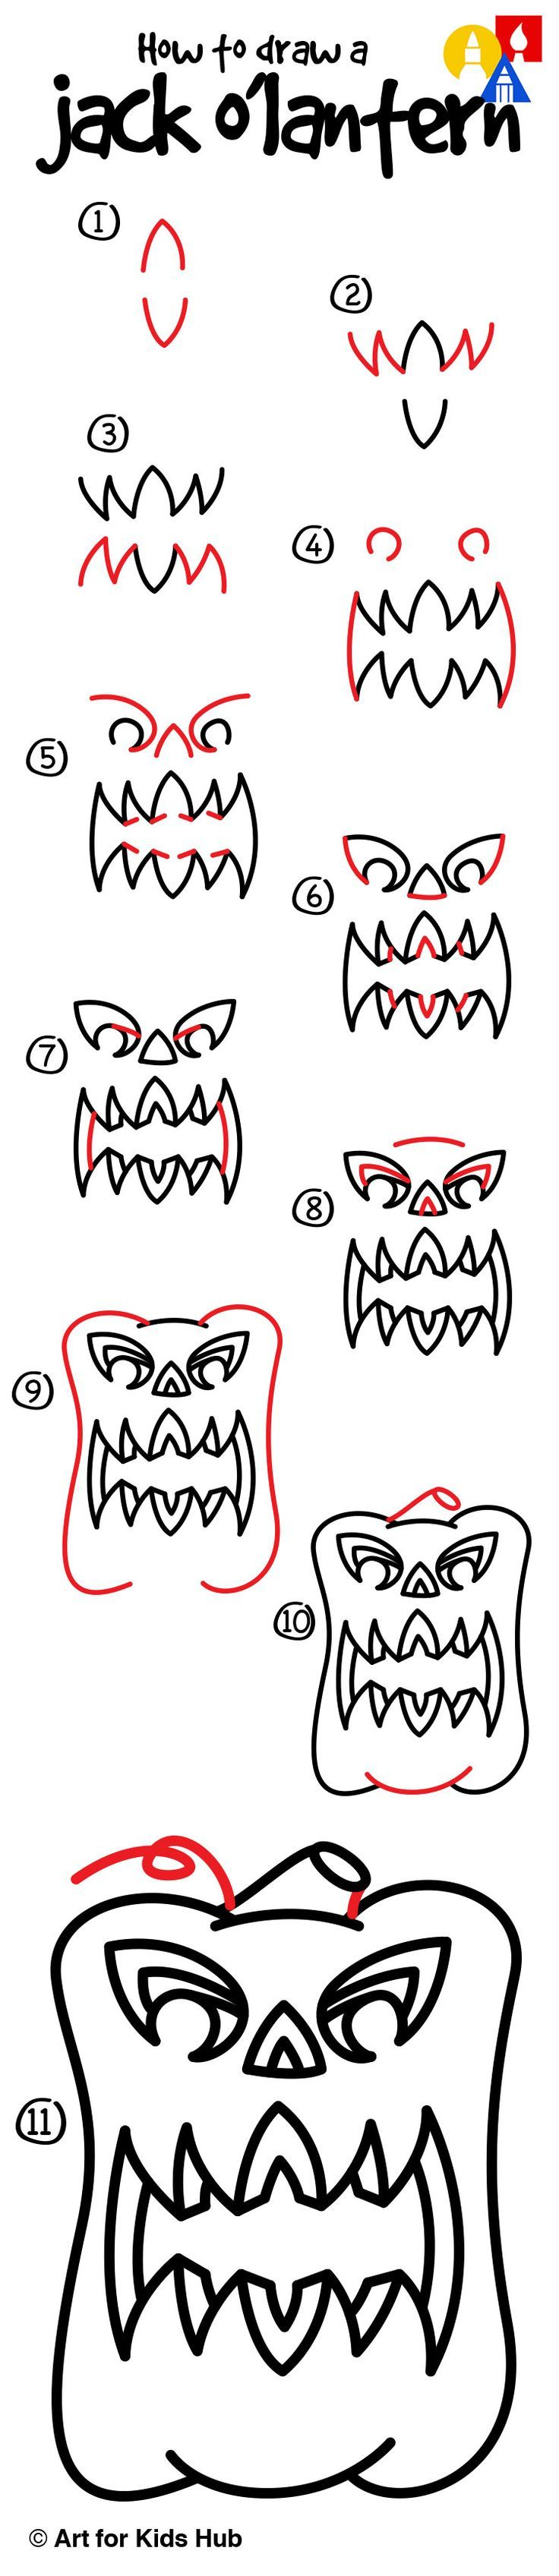 How to draw a 3D jack o'lantern!